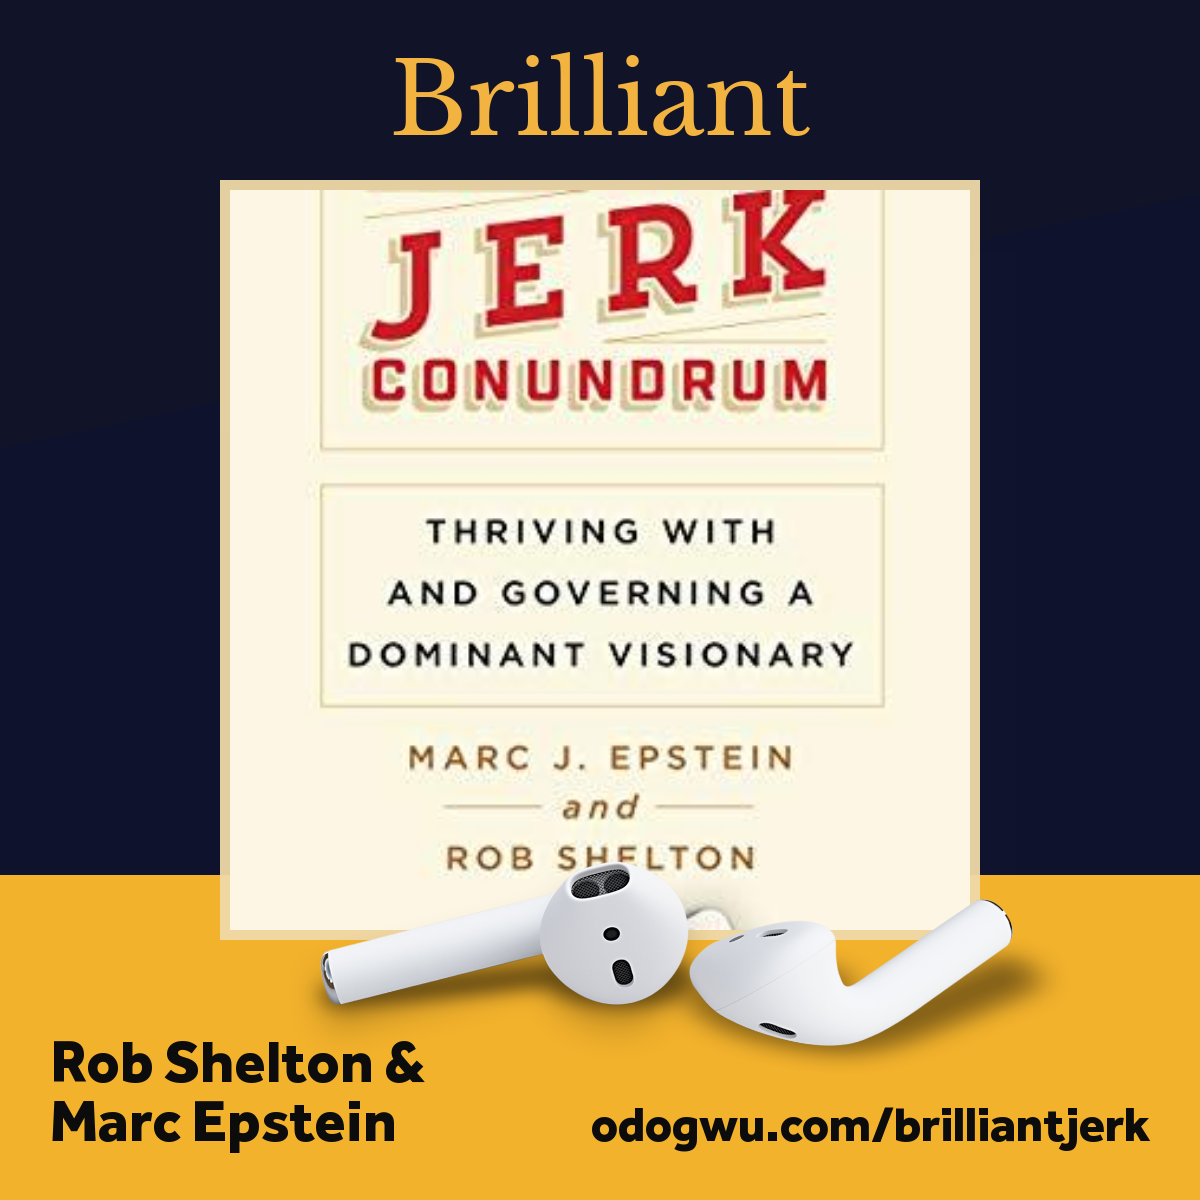 The Brilliant Jerk Conundrum